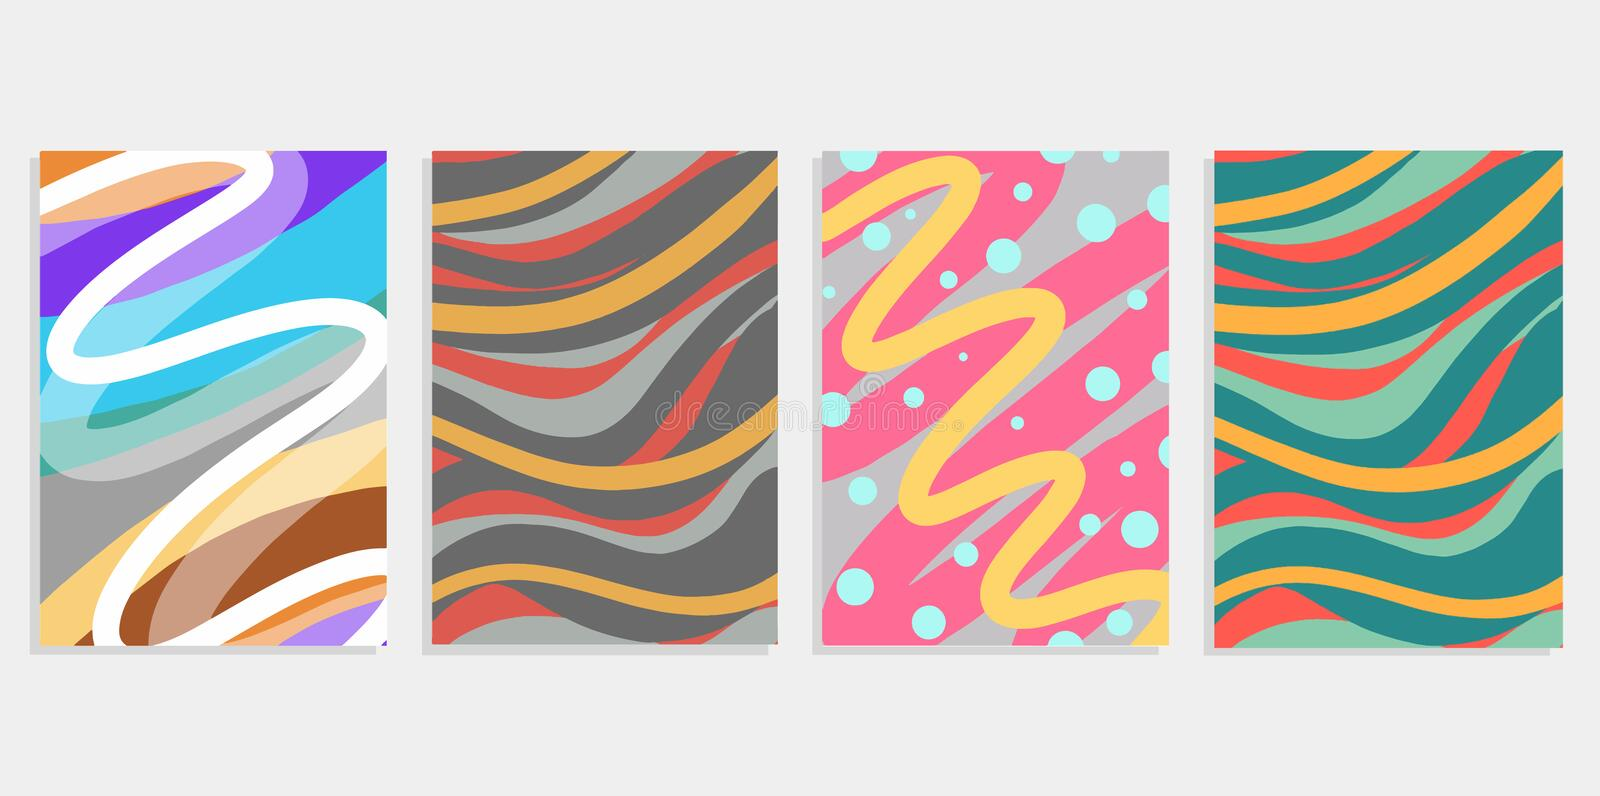 Minimal set abstract background covers design. Colorful halftone gradients. Future geometric patterns. Eps10 vector illustration c stock illustration